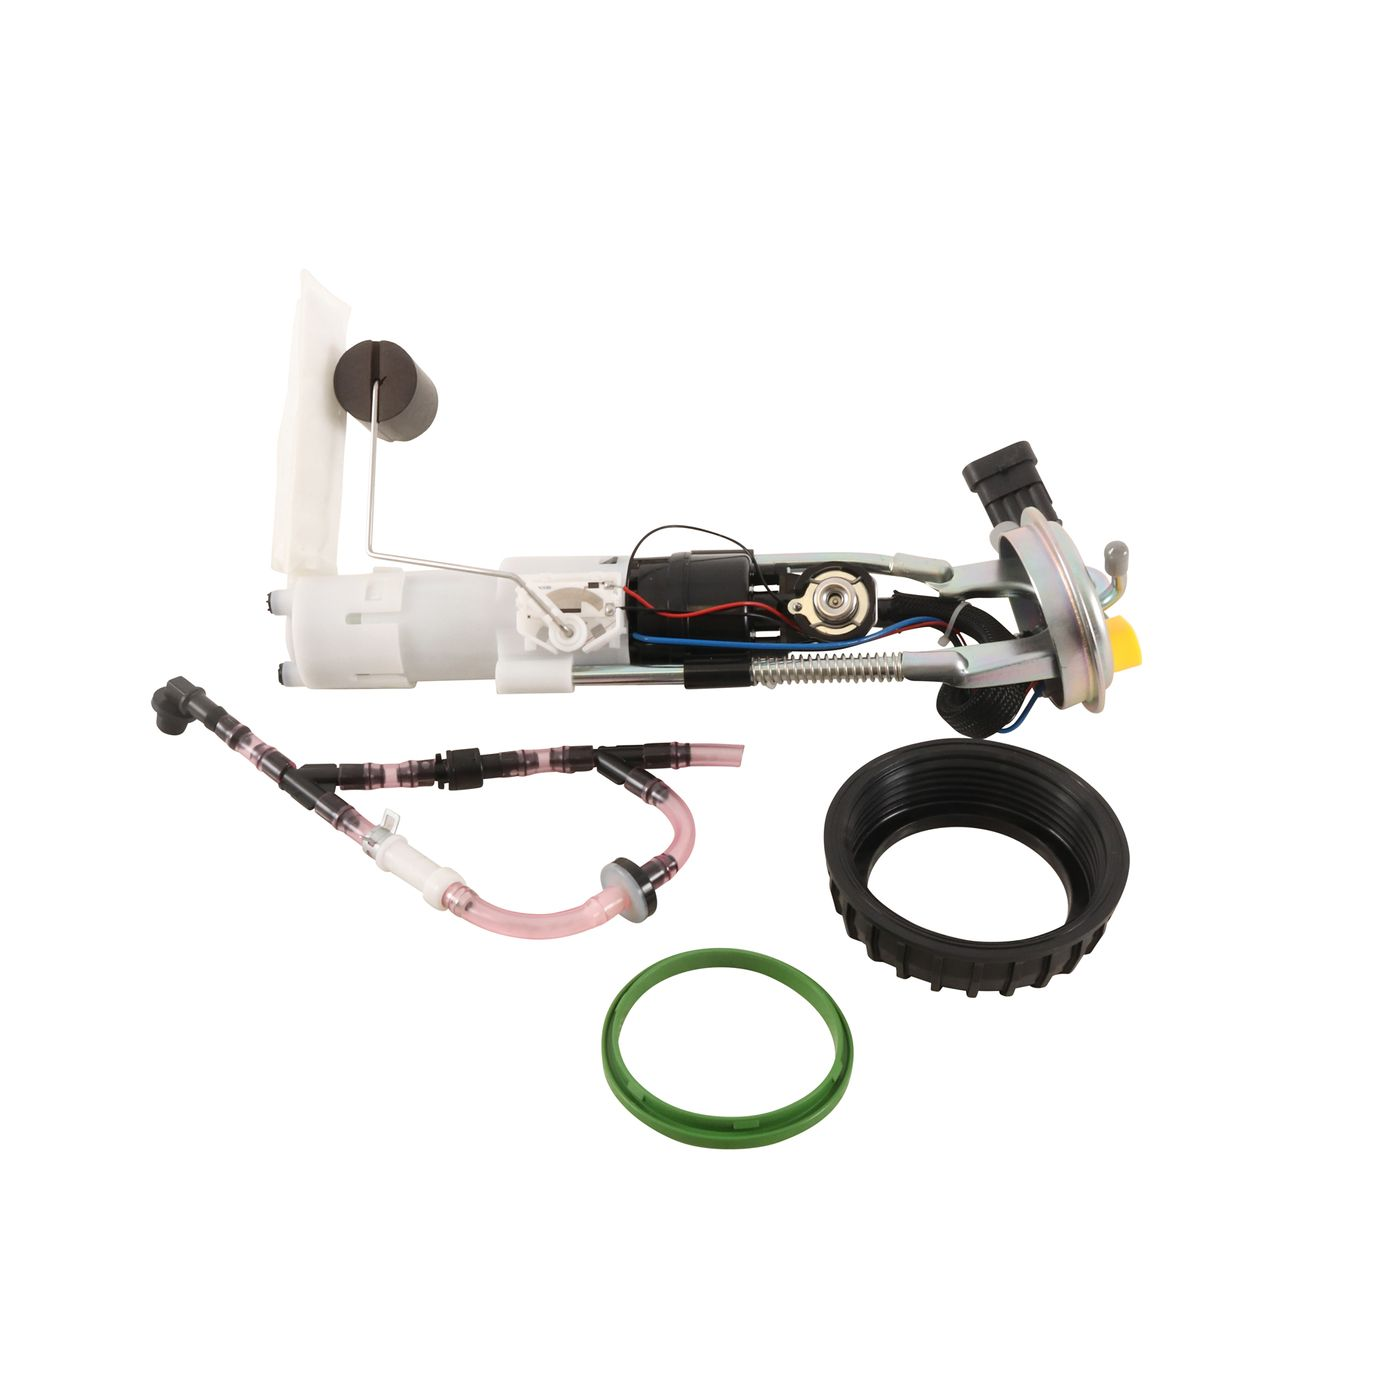 Wrp Fuel Pump Modules - WRP471022 image